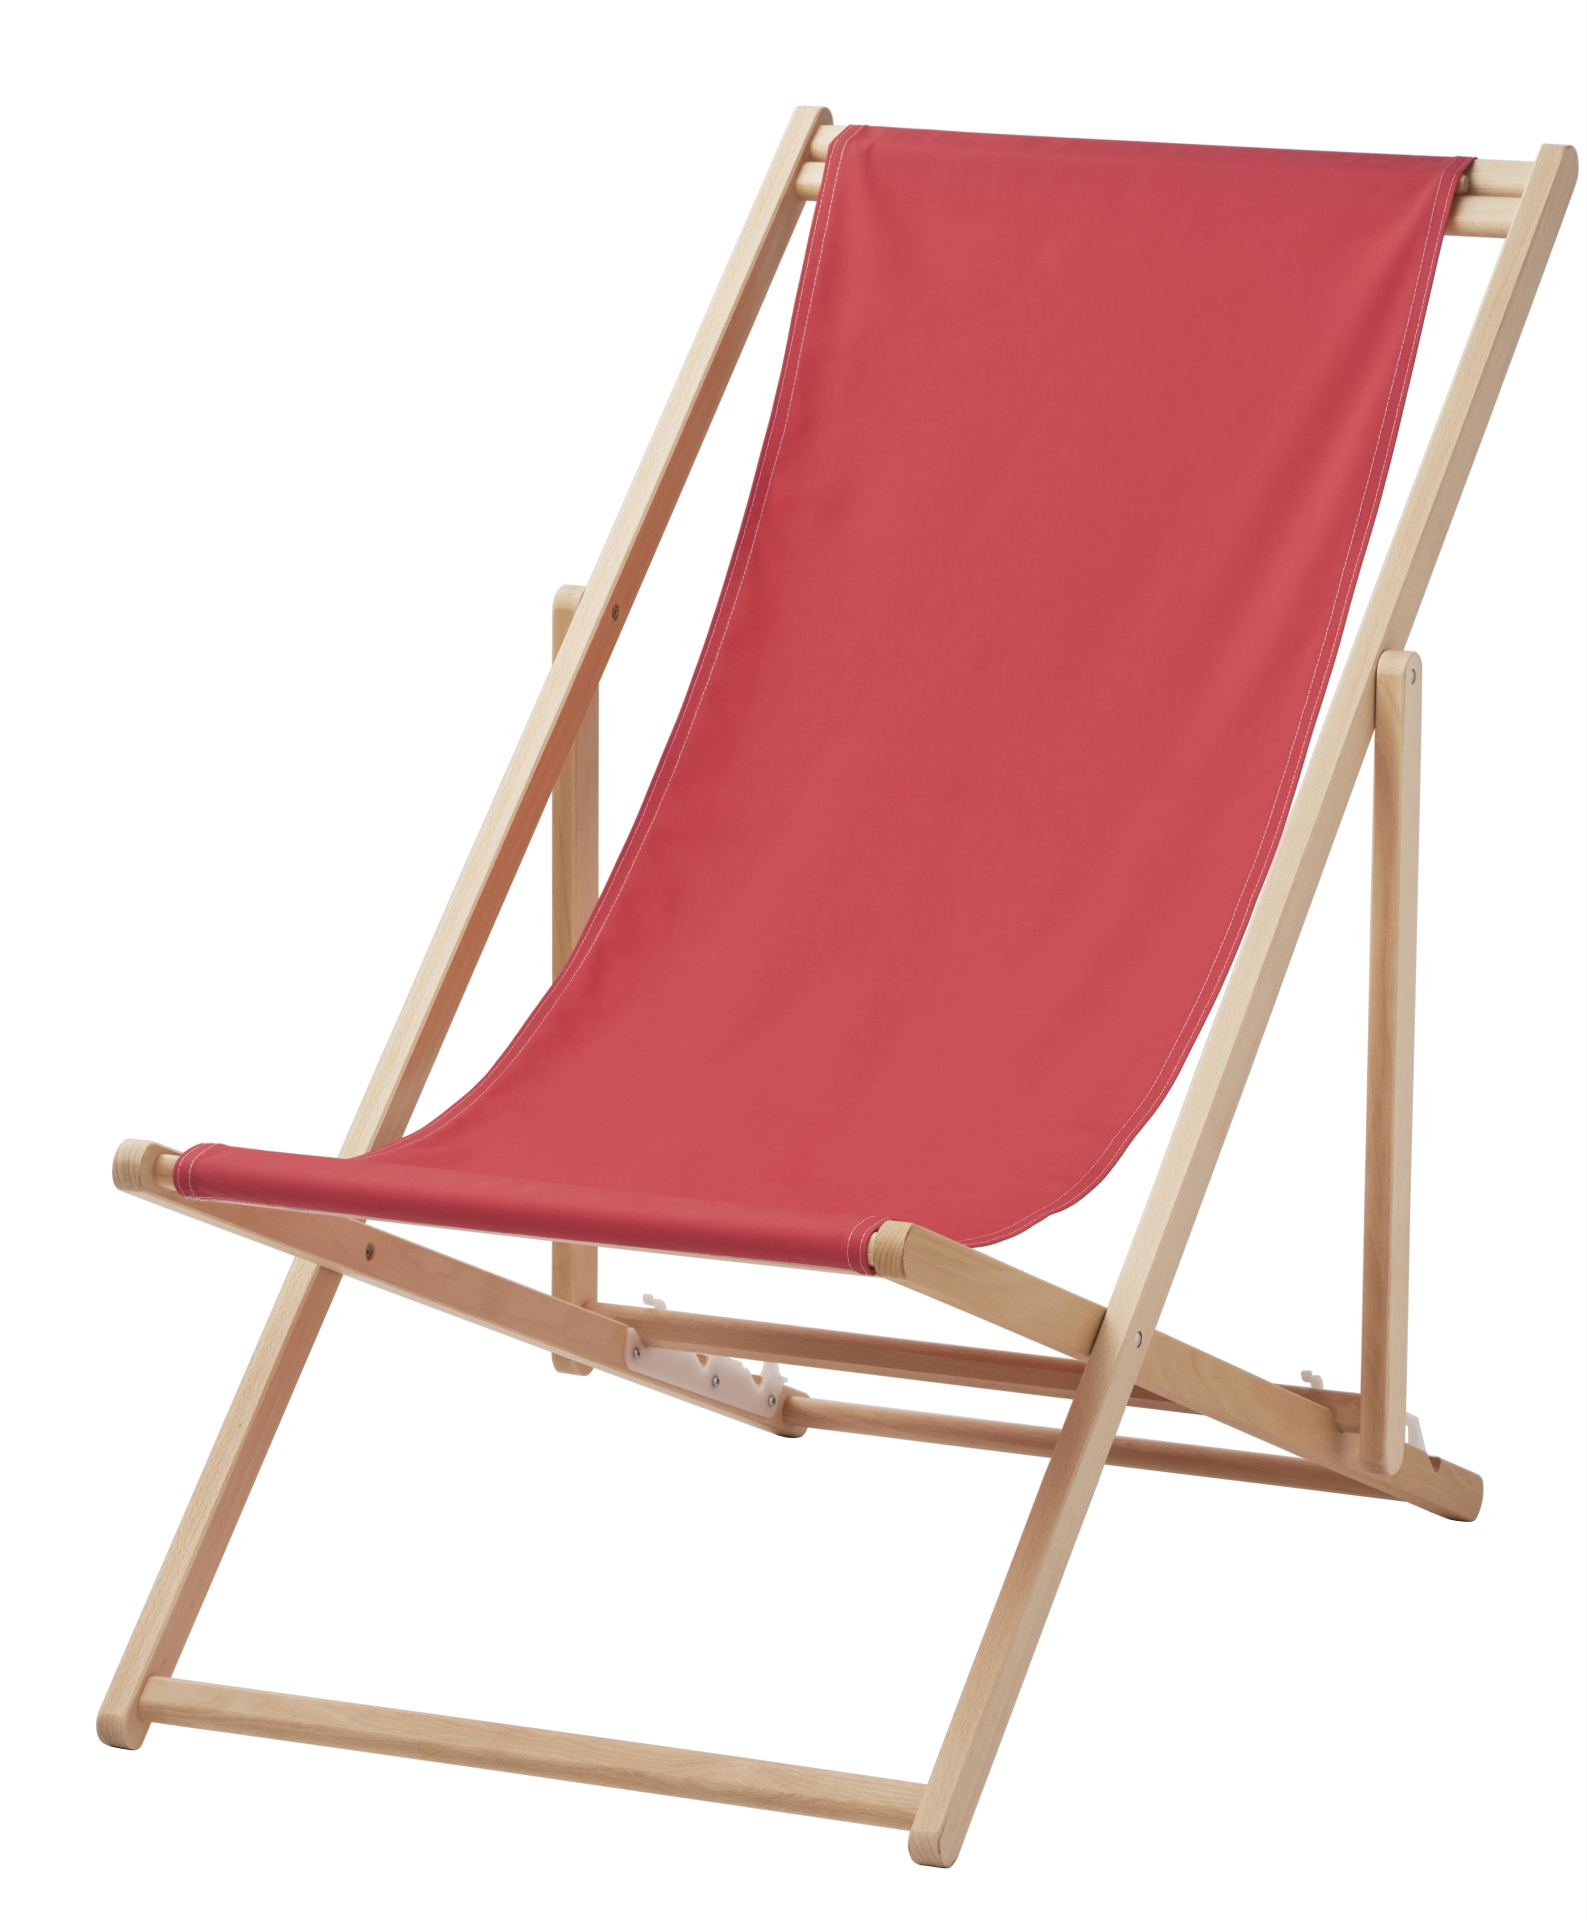 Beach Chair With Article Number 802 873 95